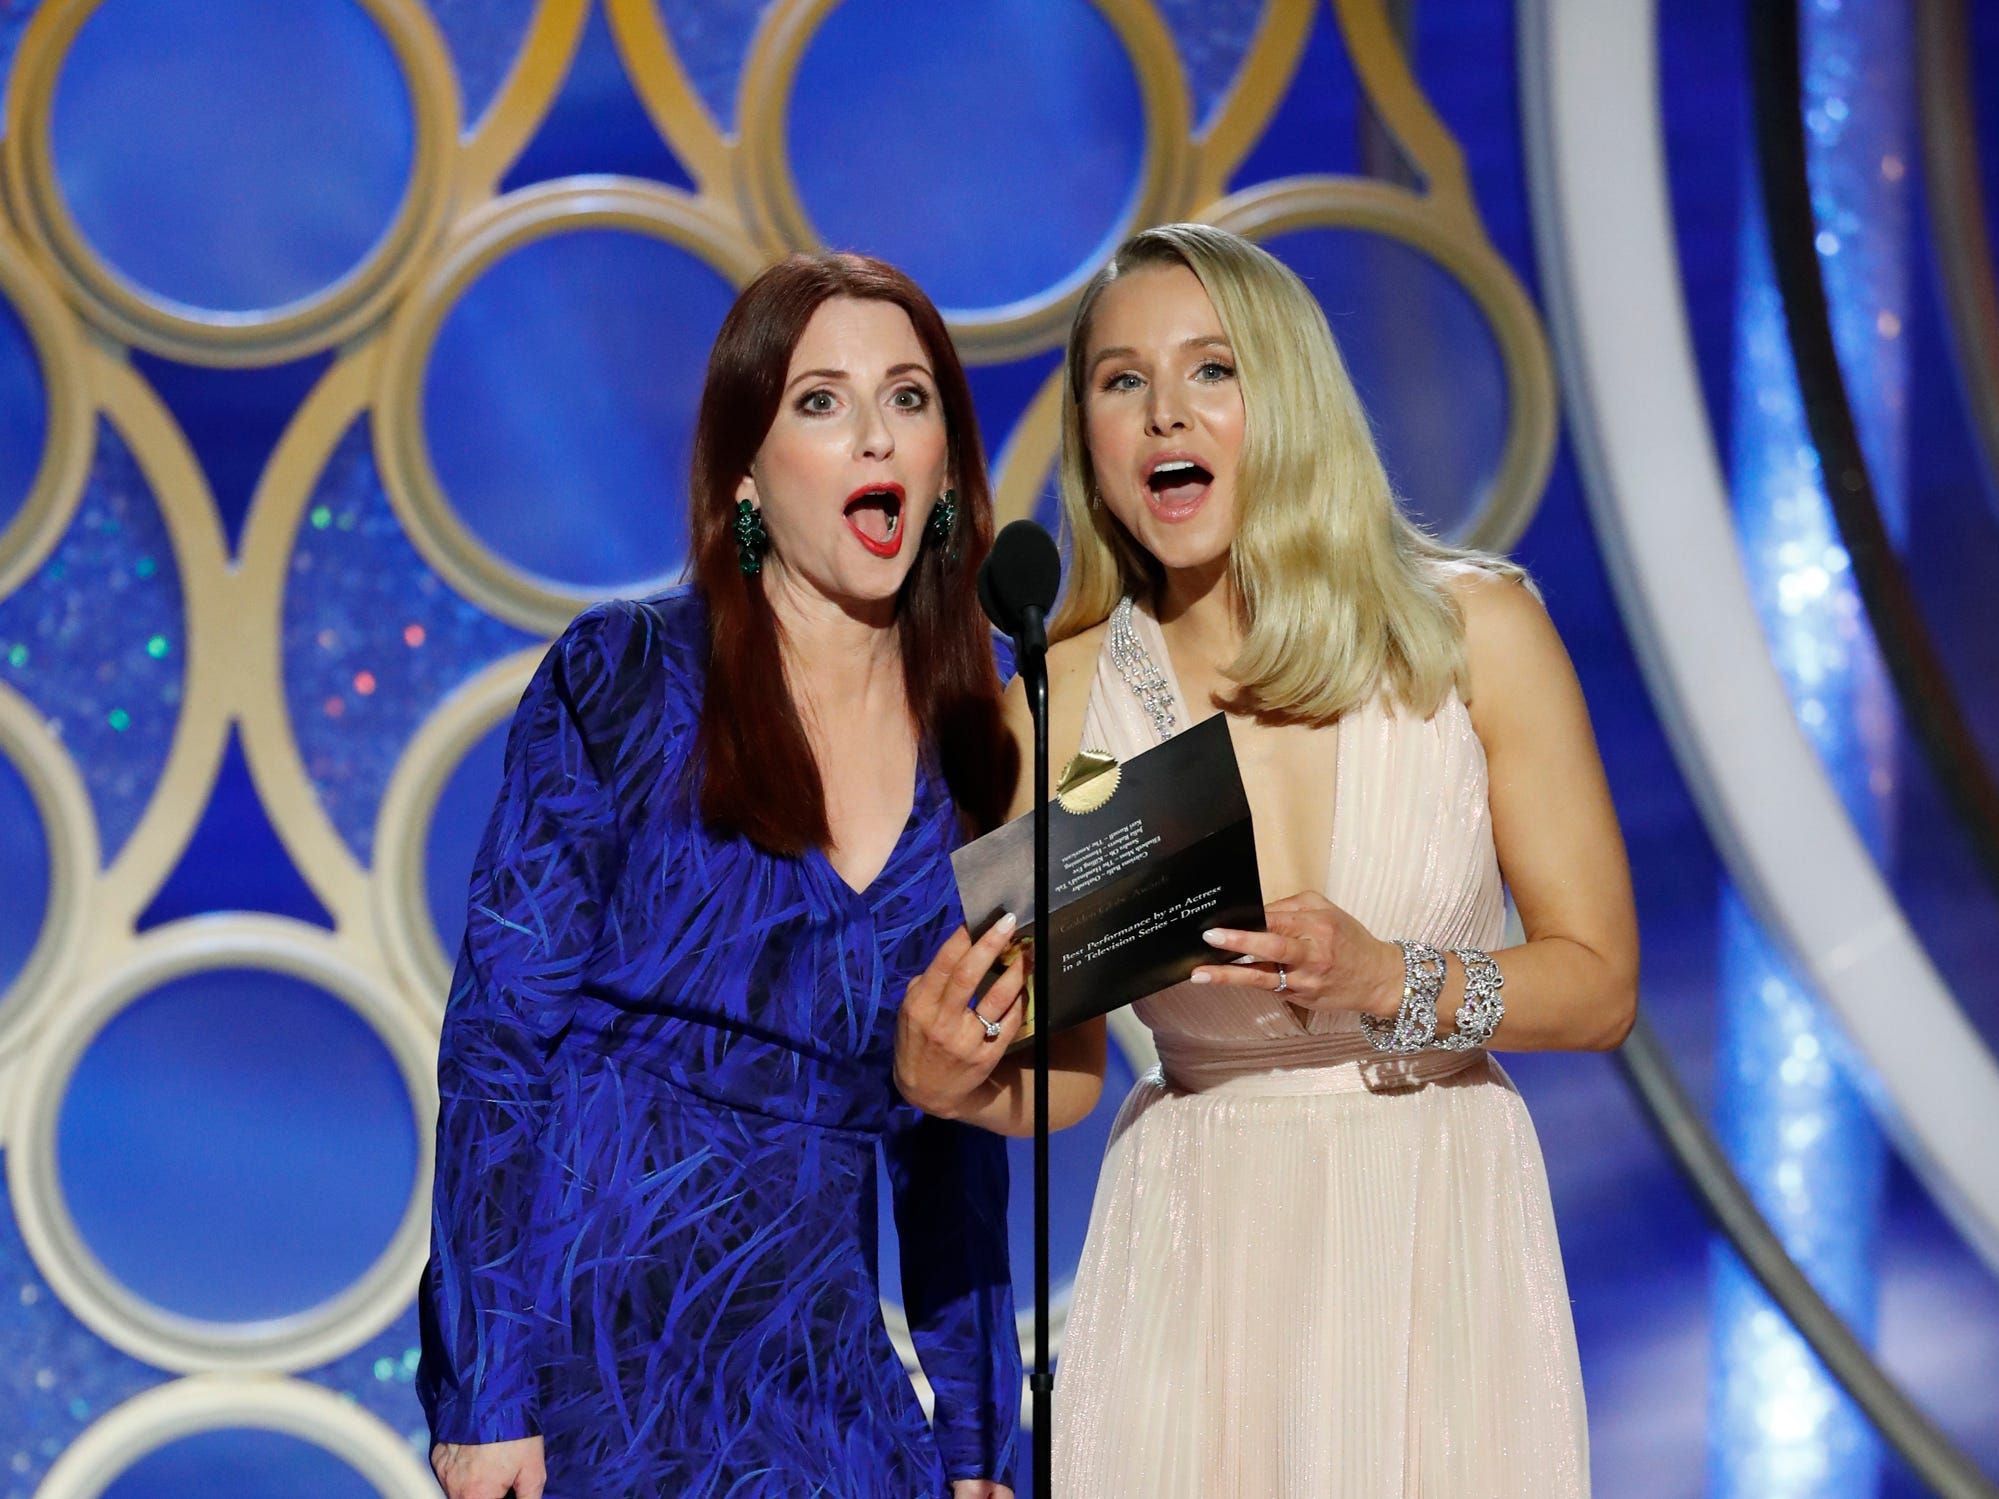 This image released by NBC shows presenters Megan Mullally, left, and Kristin Bell during the 76th Annual Golden Globe Awards at the Beverly Hilton Hotel.